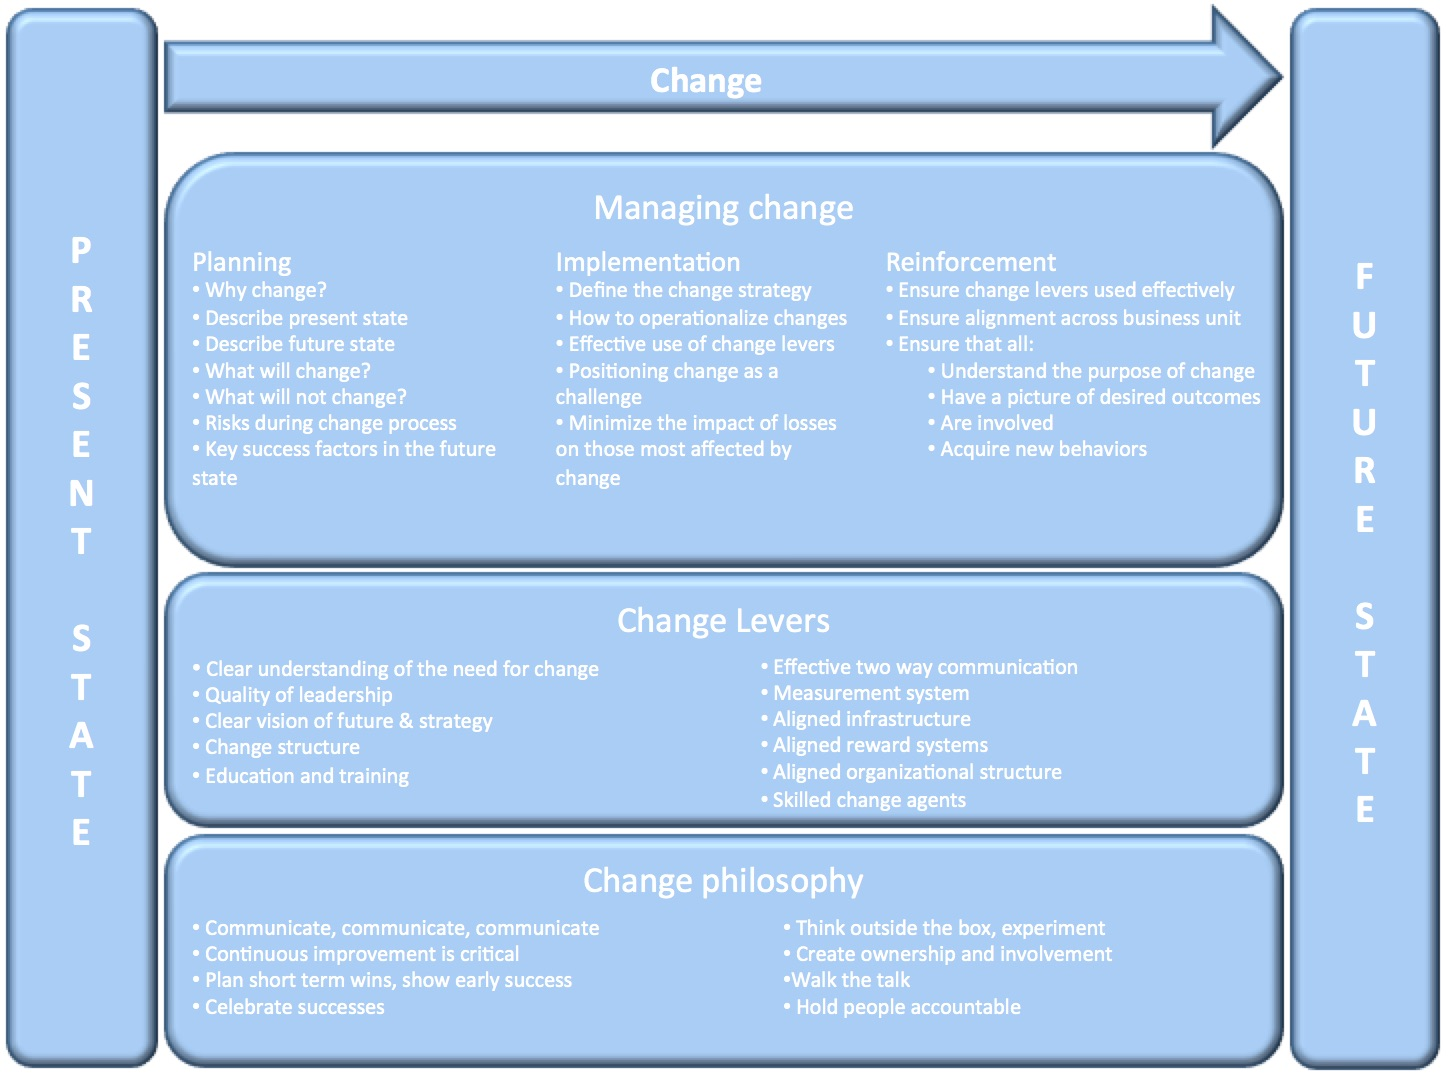 Change management, Transformation, change